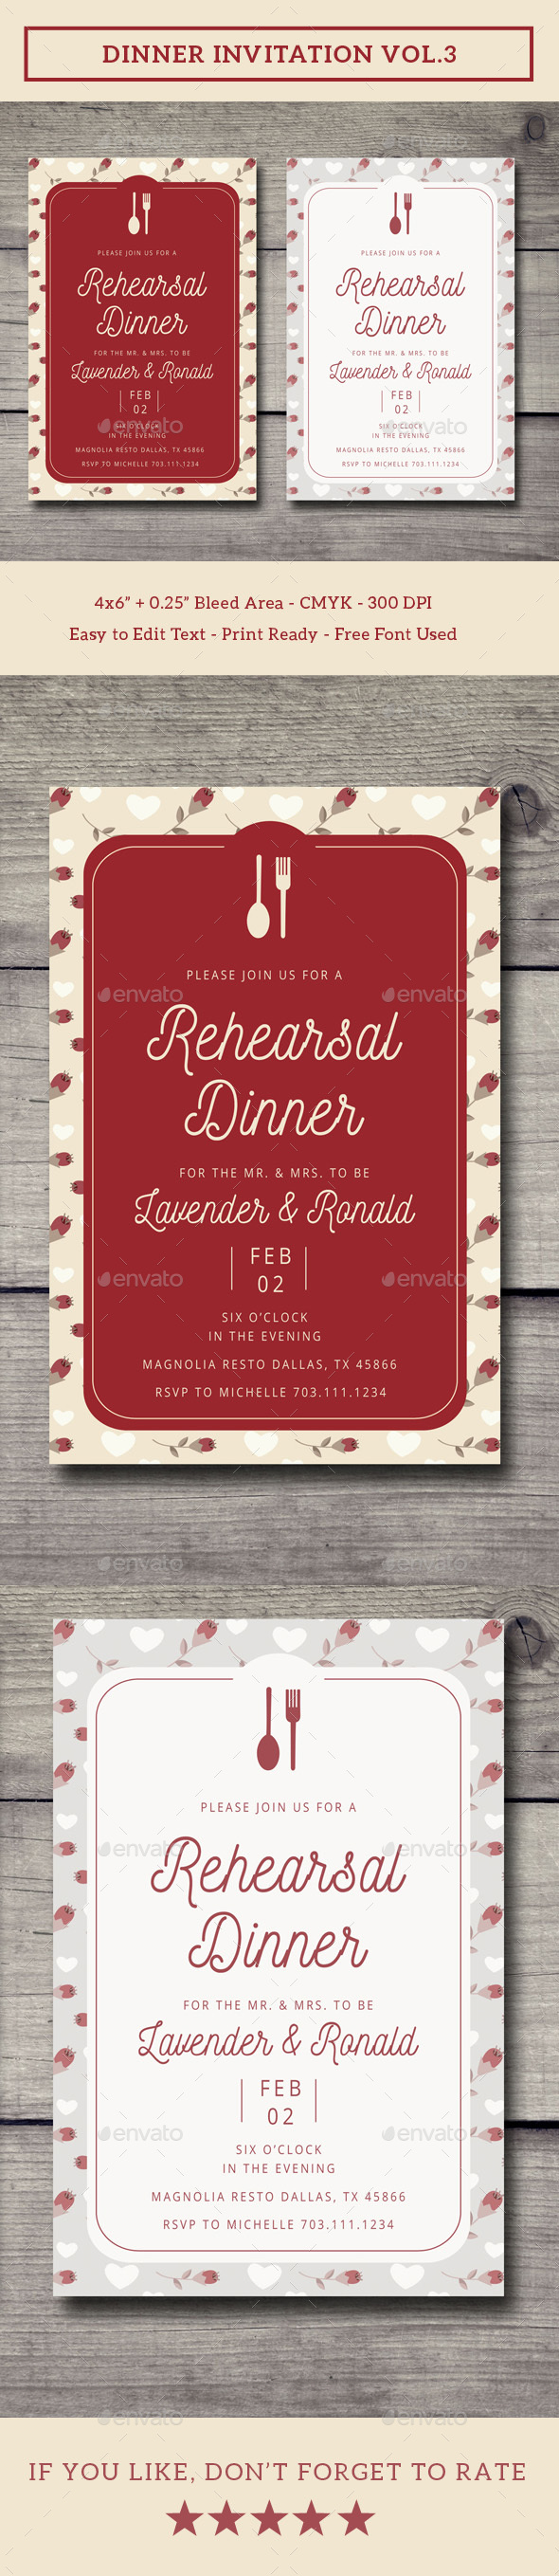 Dinner Invitation Vol.3 - Invitations Cards & Invites